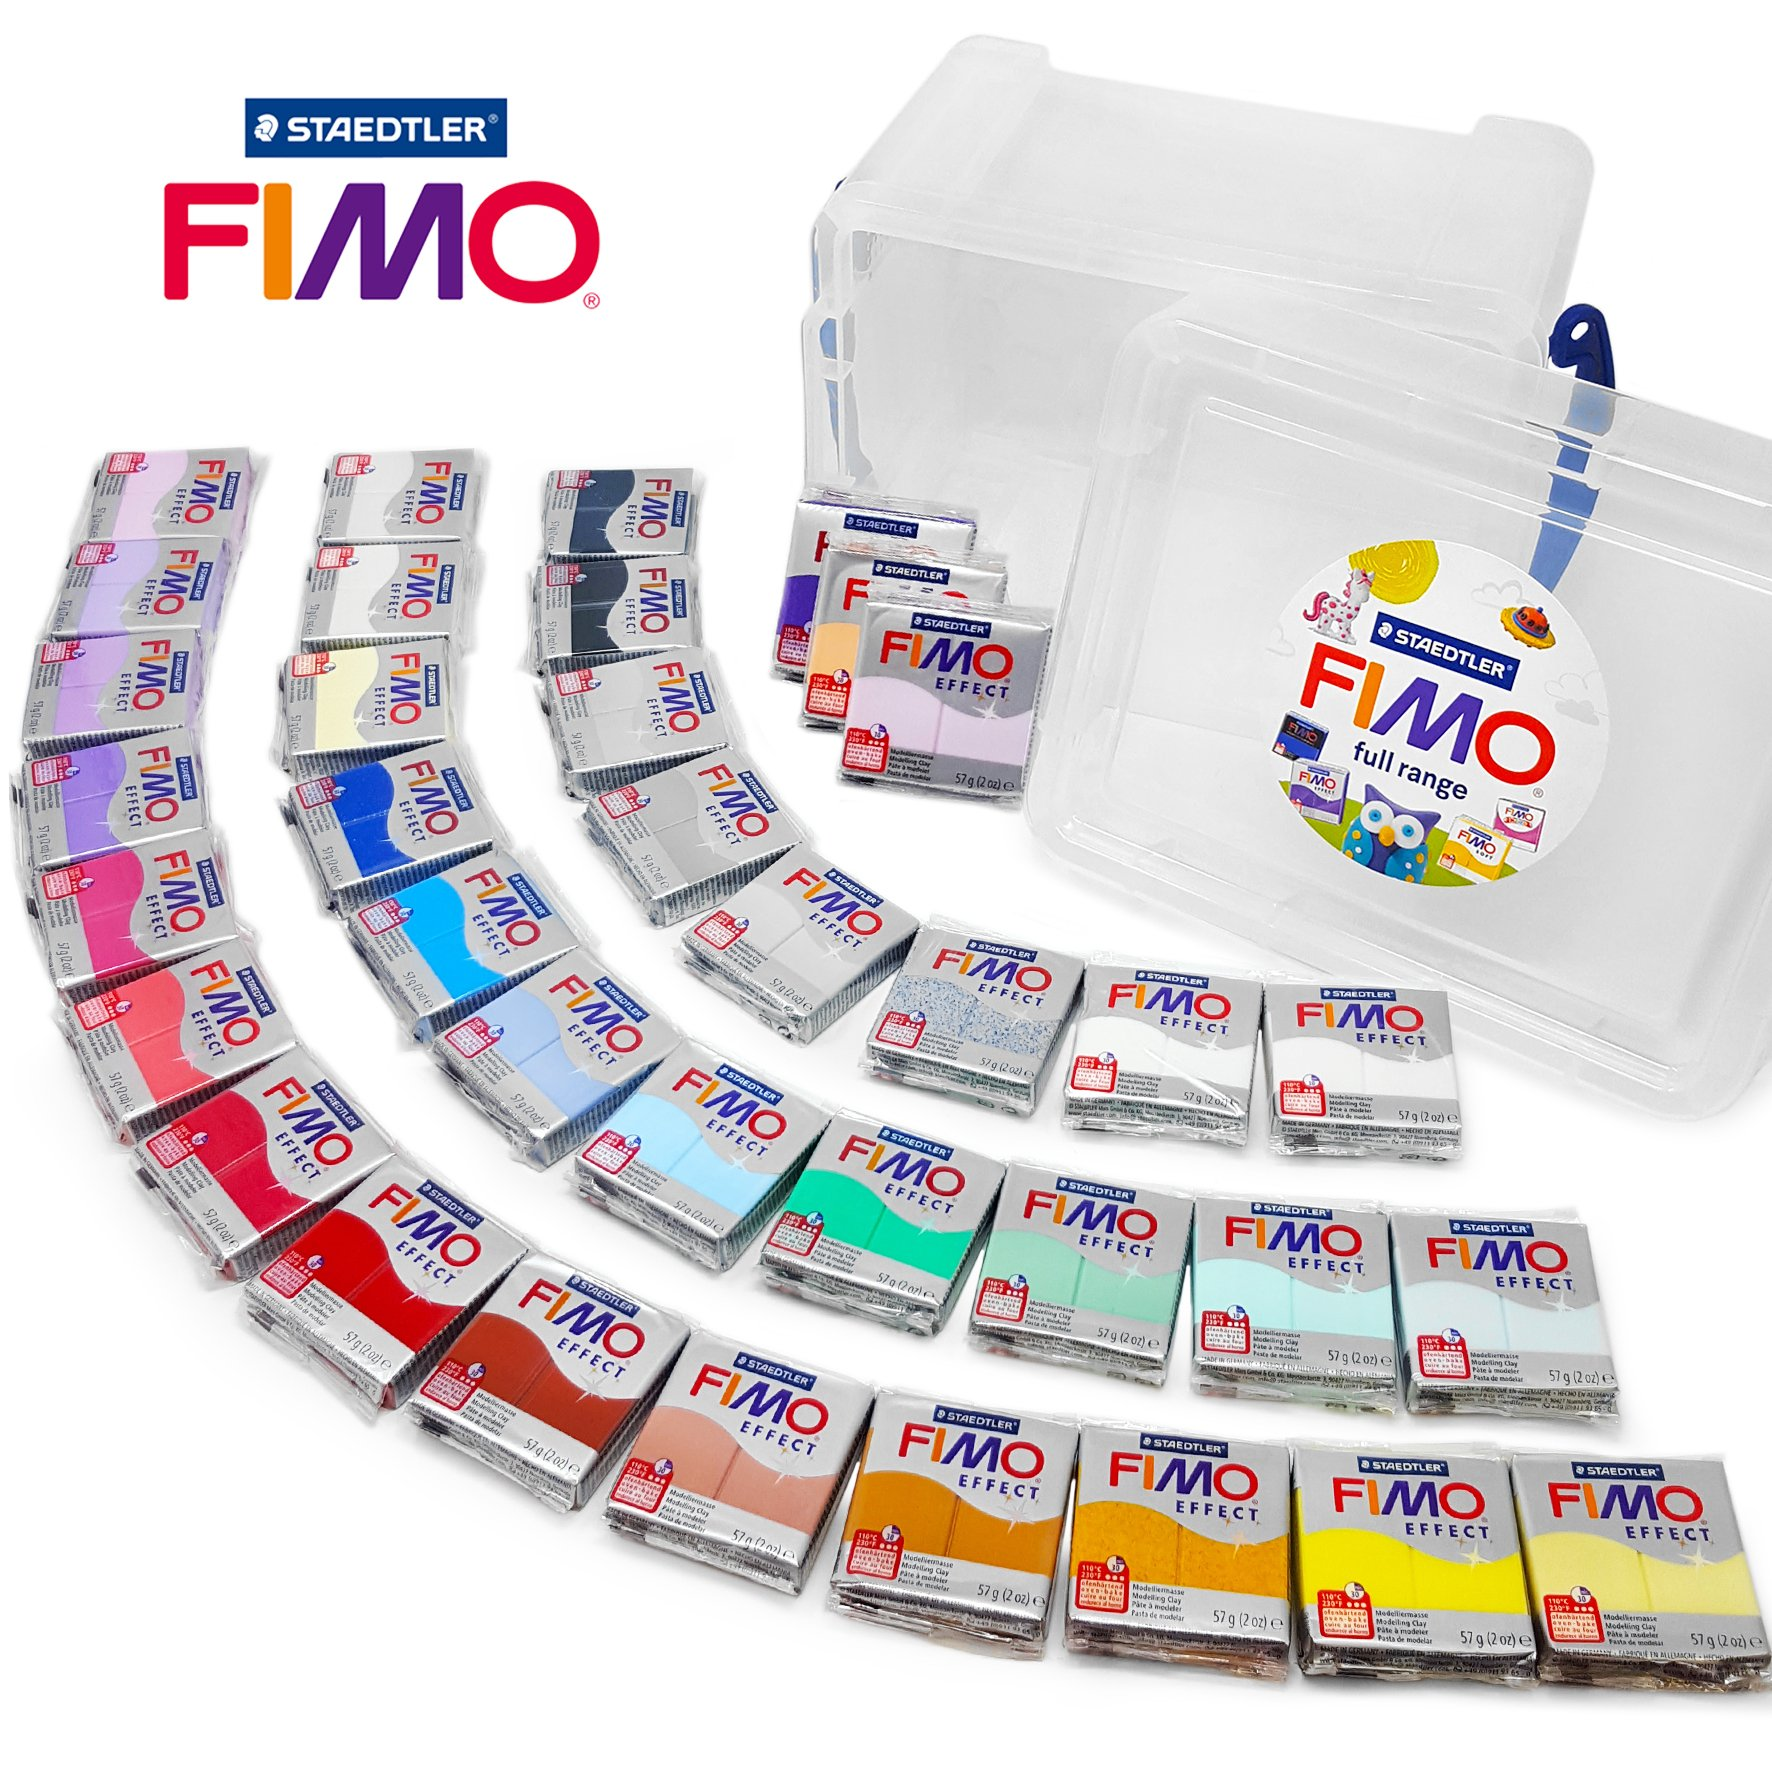 FIMO Effect 57g (2oz) Polymer Modelling Moulding Oven Bake Clay - Full Range of all 36 Colours in Clear Storage Tub by Fimo